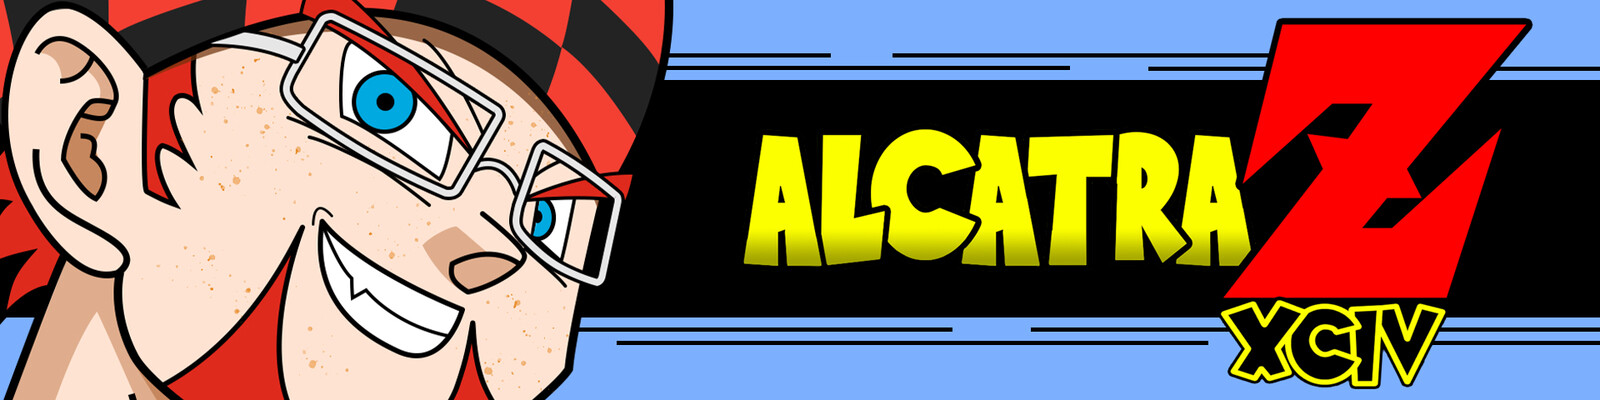 The Twitch banner for AlcatrazXCIV